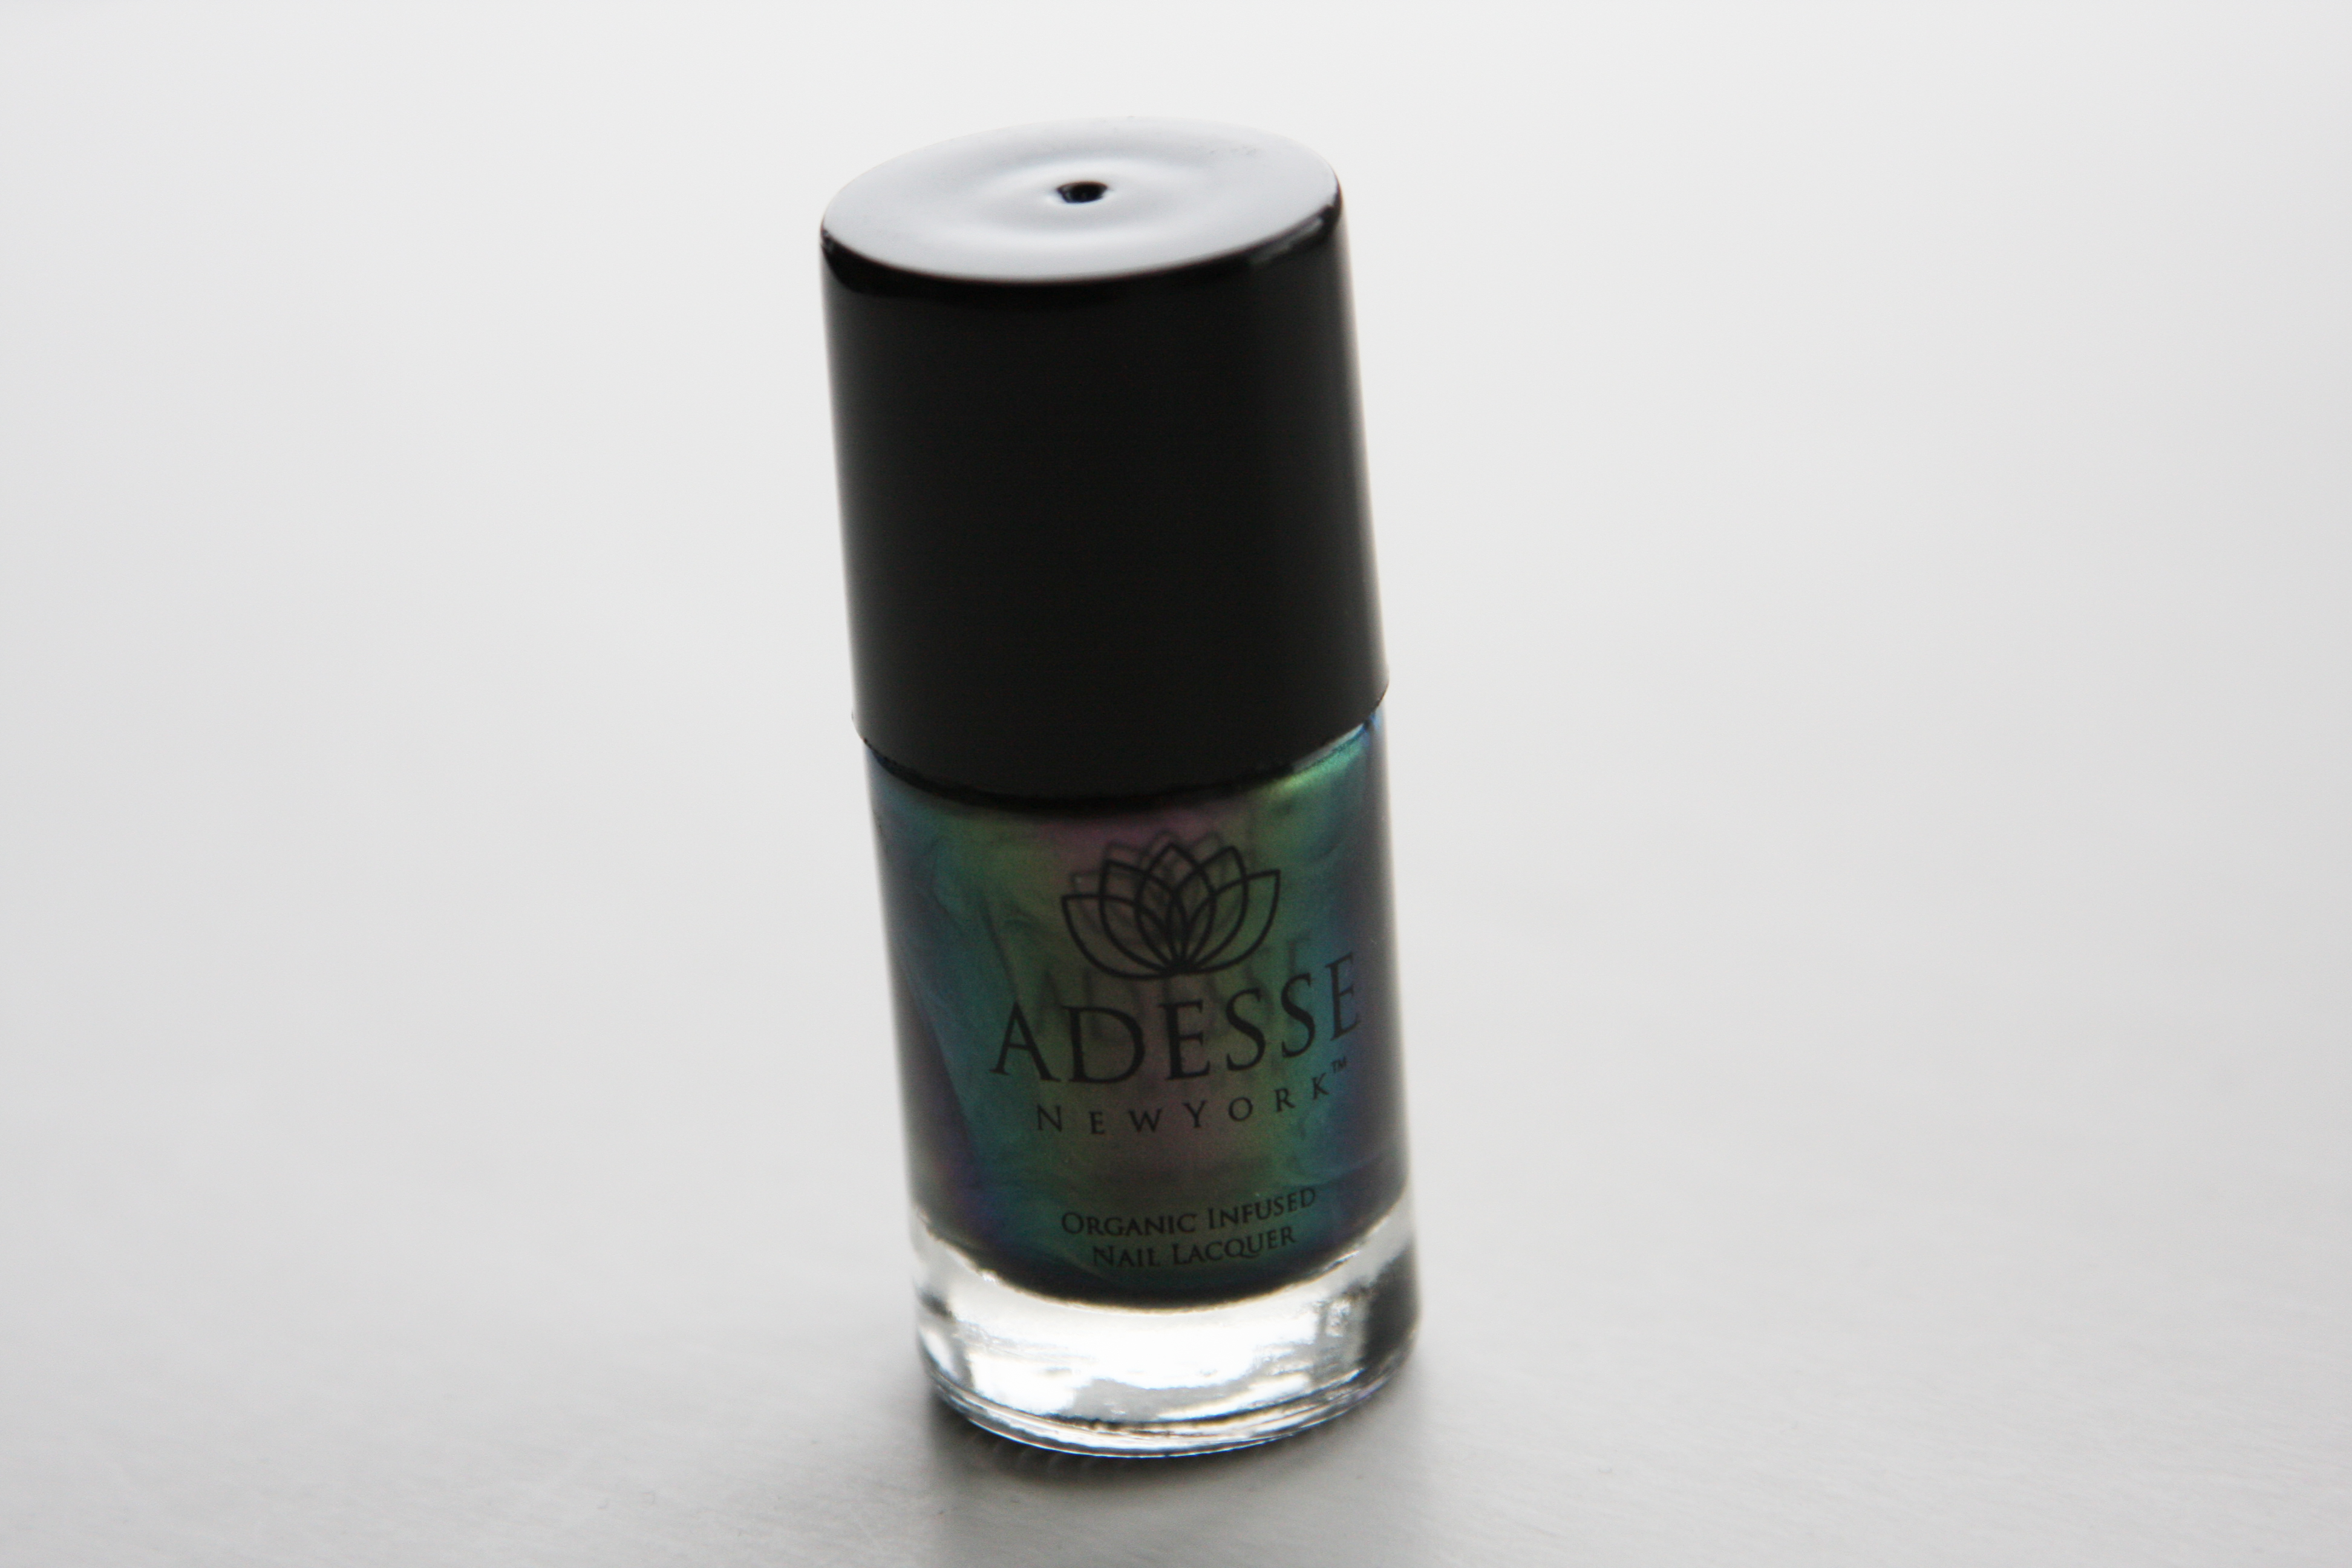 Adesse NY Nail Lacquer bottle